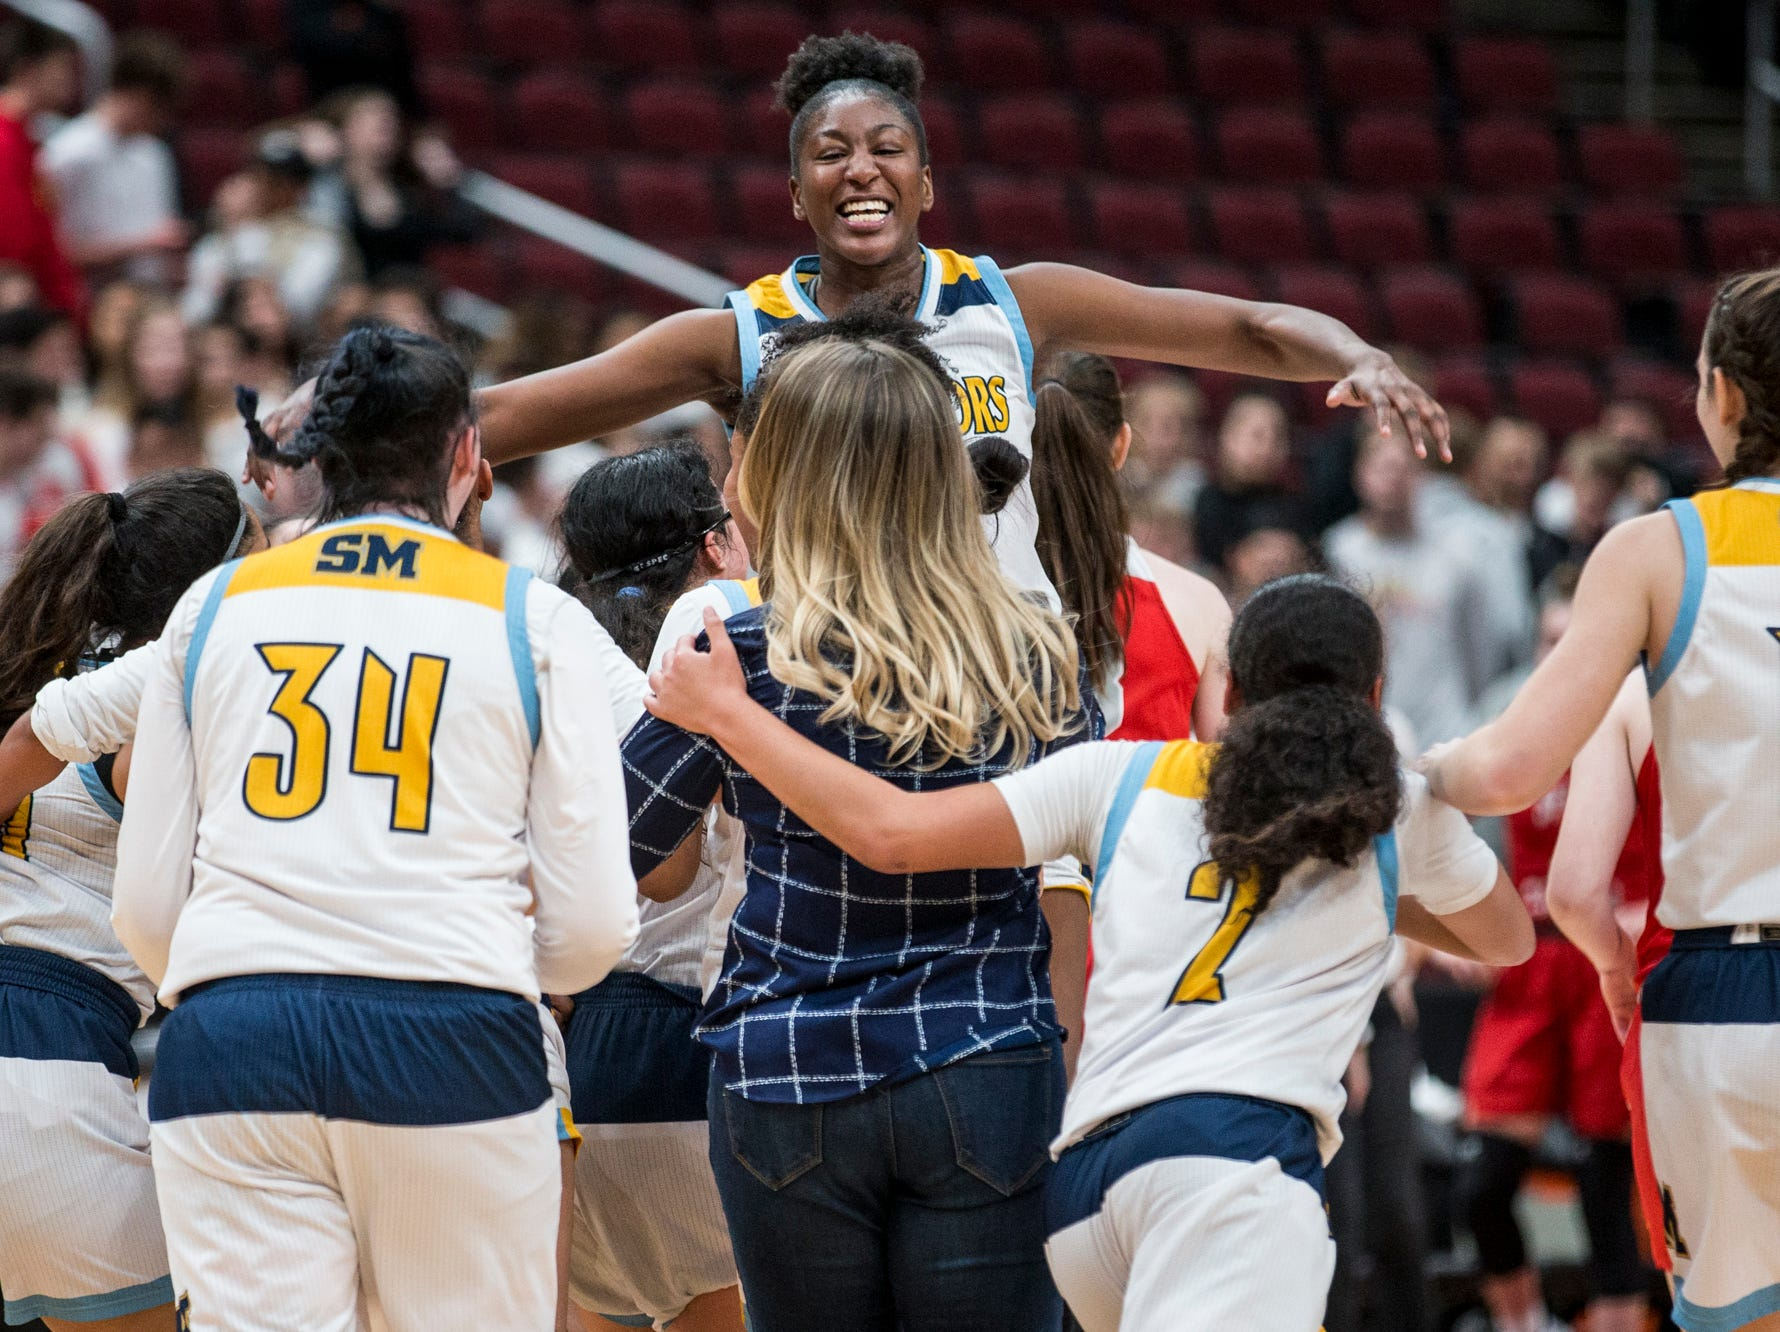 Shadow Mountain's celebrates after defeating Seton Catholic for the 4A girls basketball championship on Saturday, Feb. 23, 2019, at Gila River Arena in Glendale, Ariz.